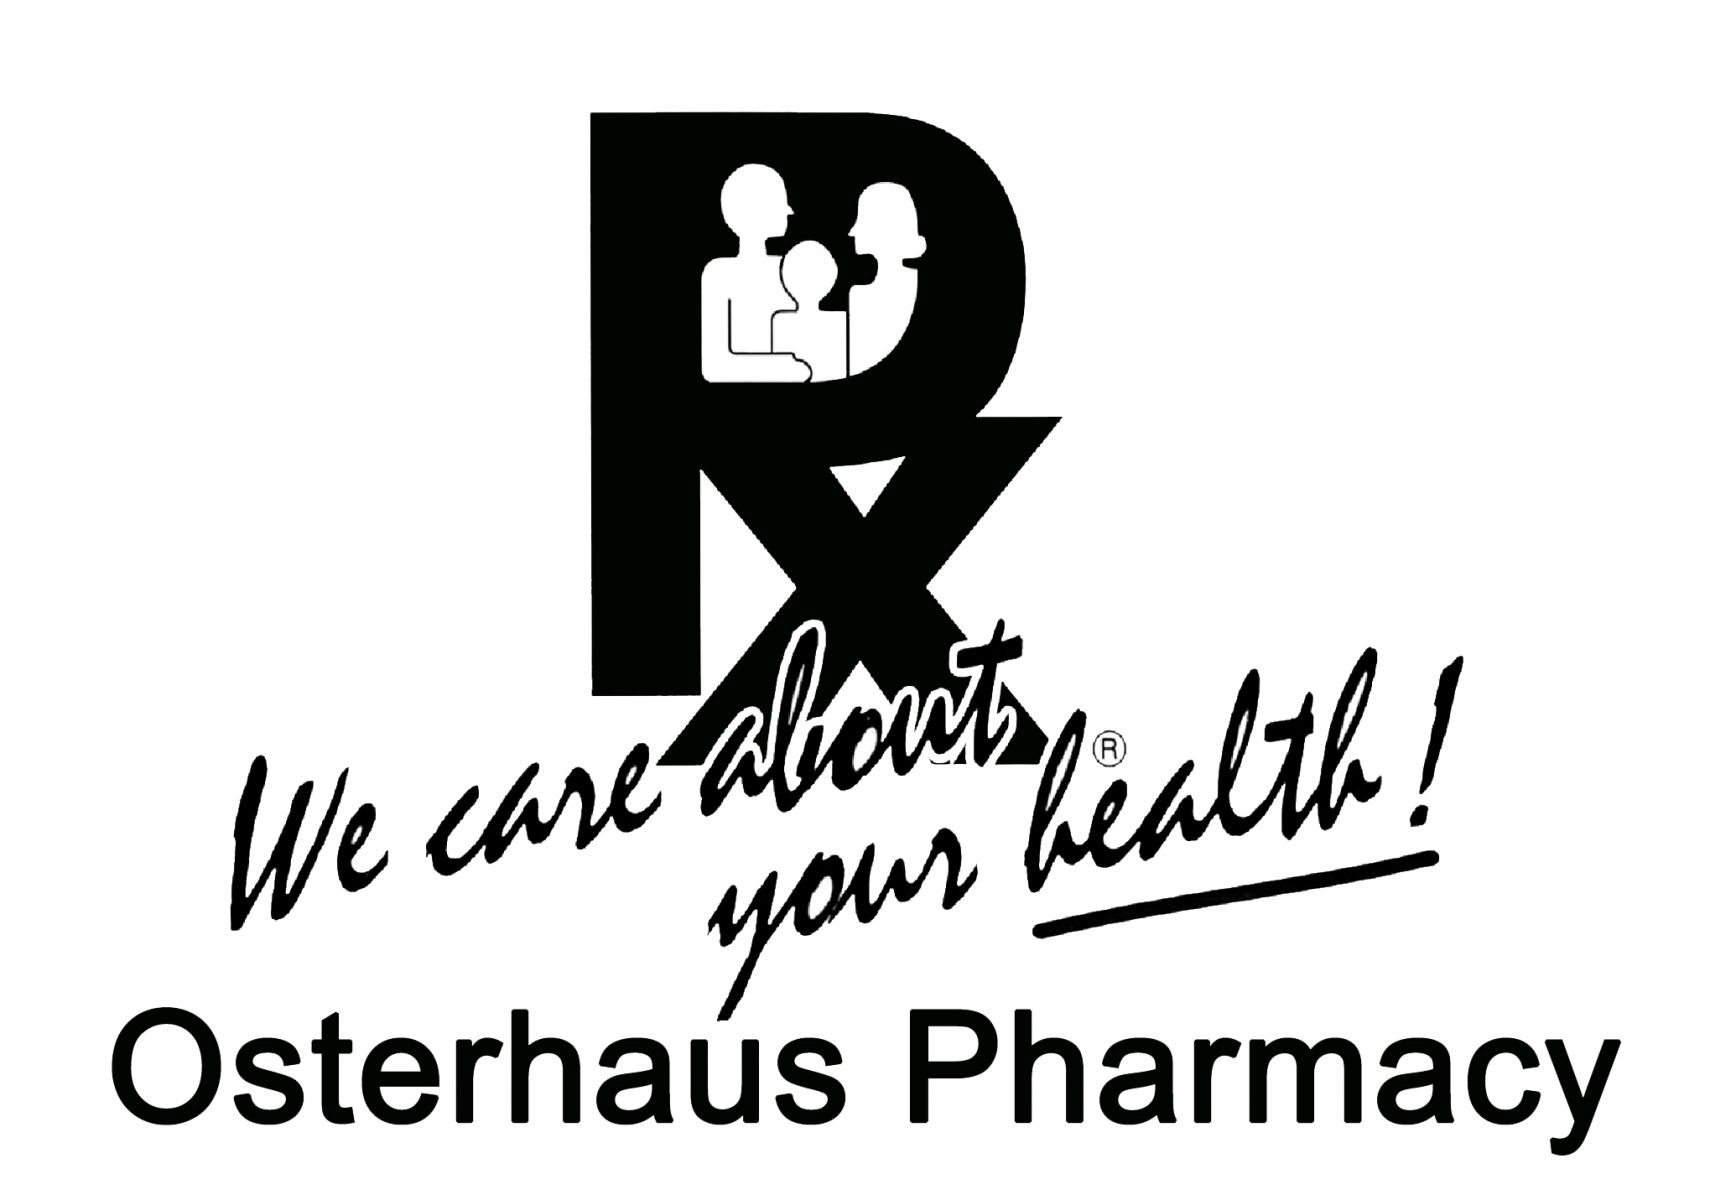 Osterhaus Pharmacy Slide Image